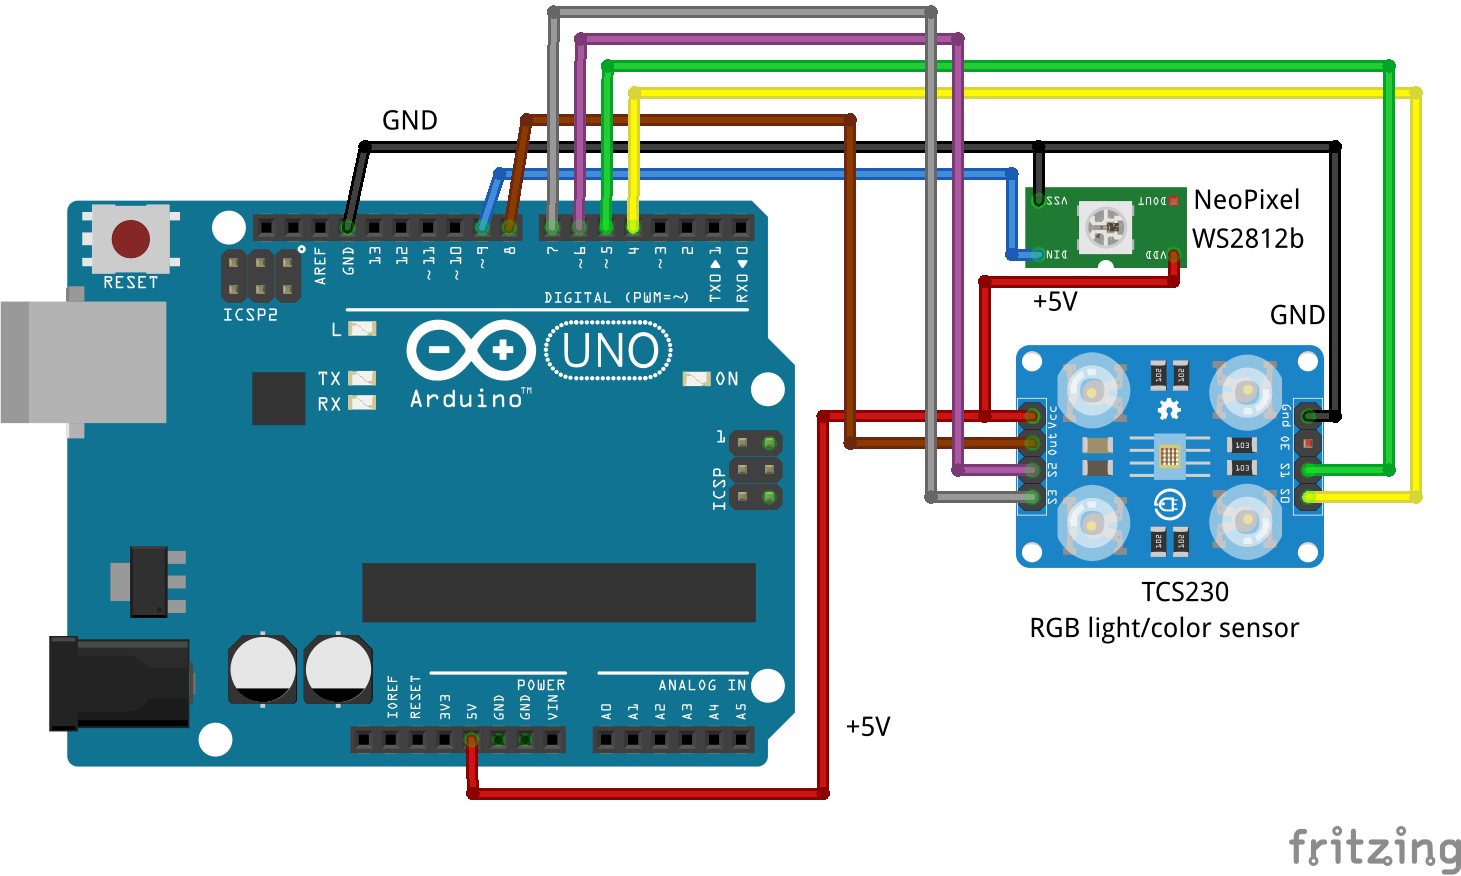 Fritzen Maker Tcs230 Rgb Color Sensor With Arduino Schematic Of The Rs232 Adapter Click To Enlarge Notice That Sketch Can Control A Neopixel Ws2812b And Also Send Serial Monitor Ide Image